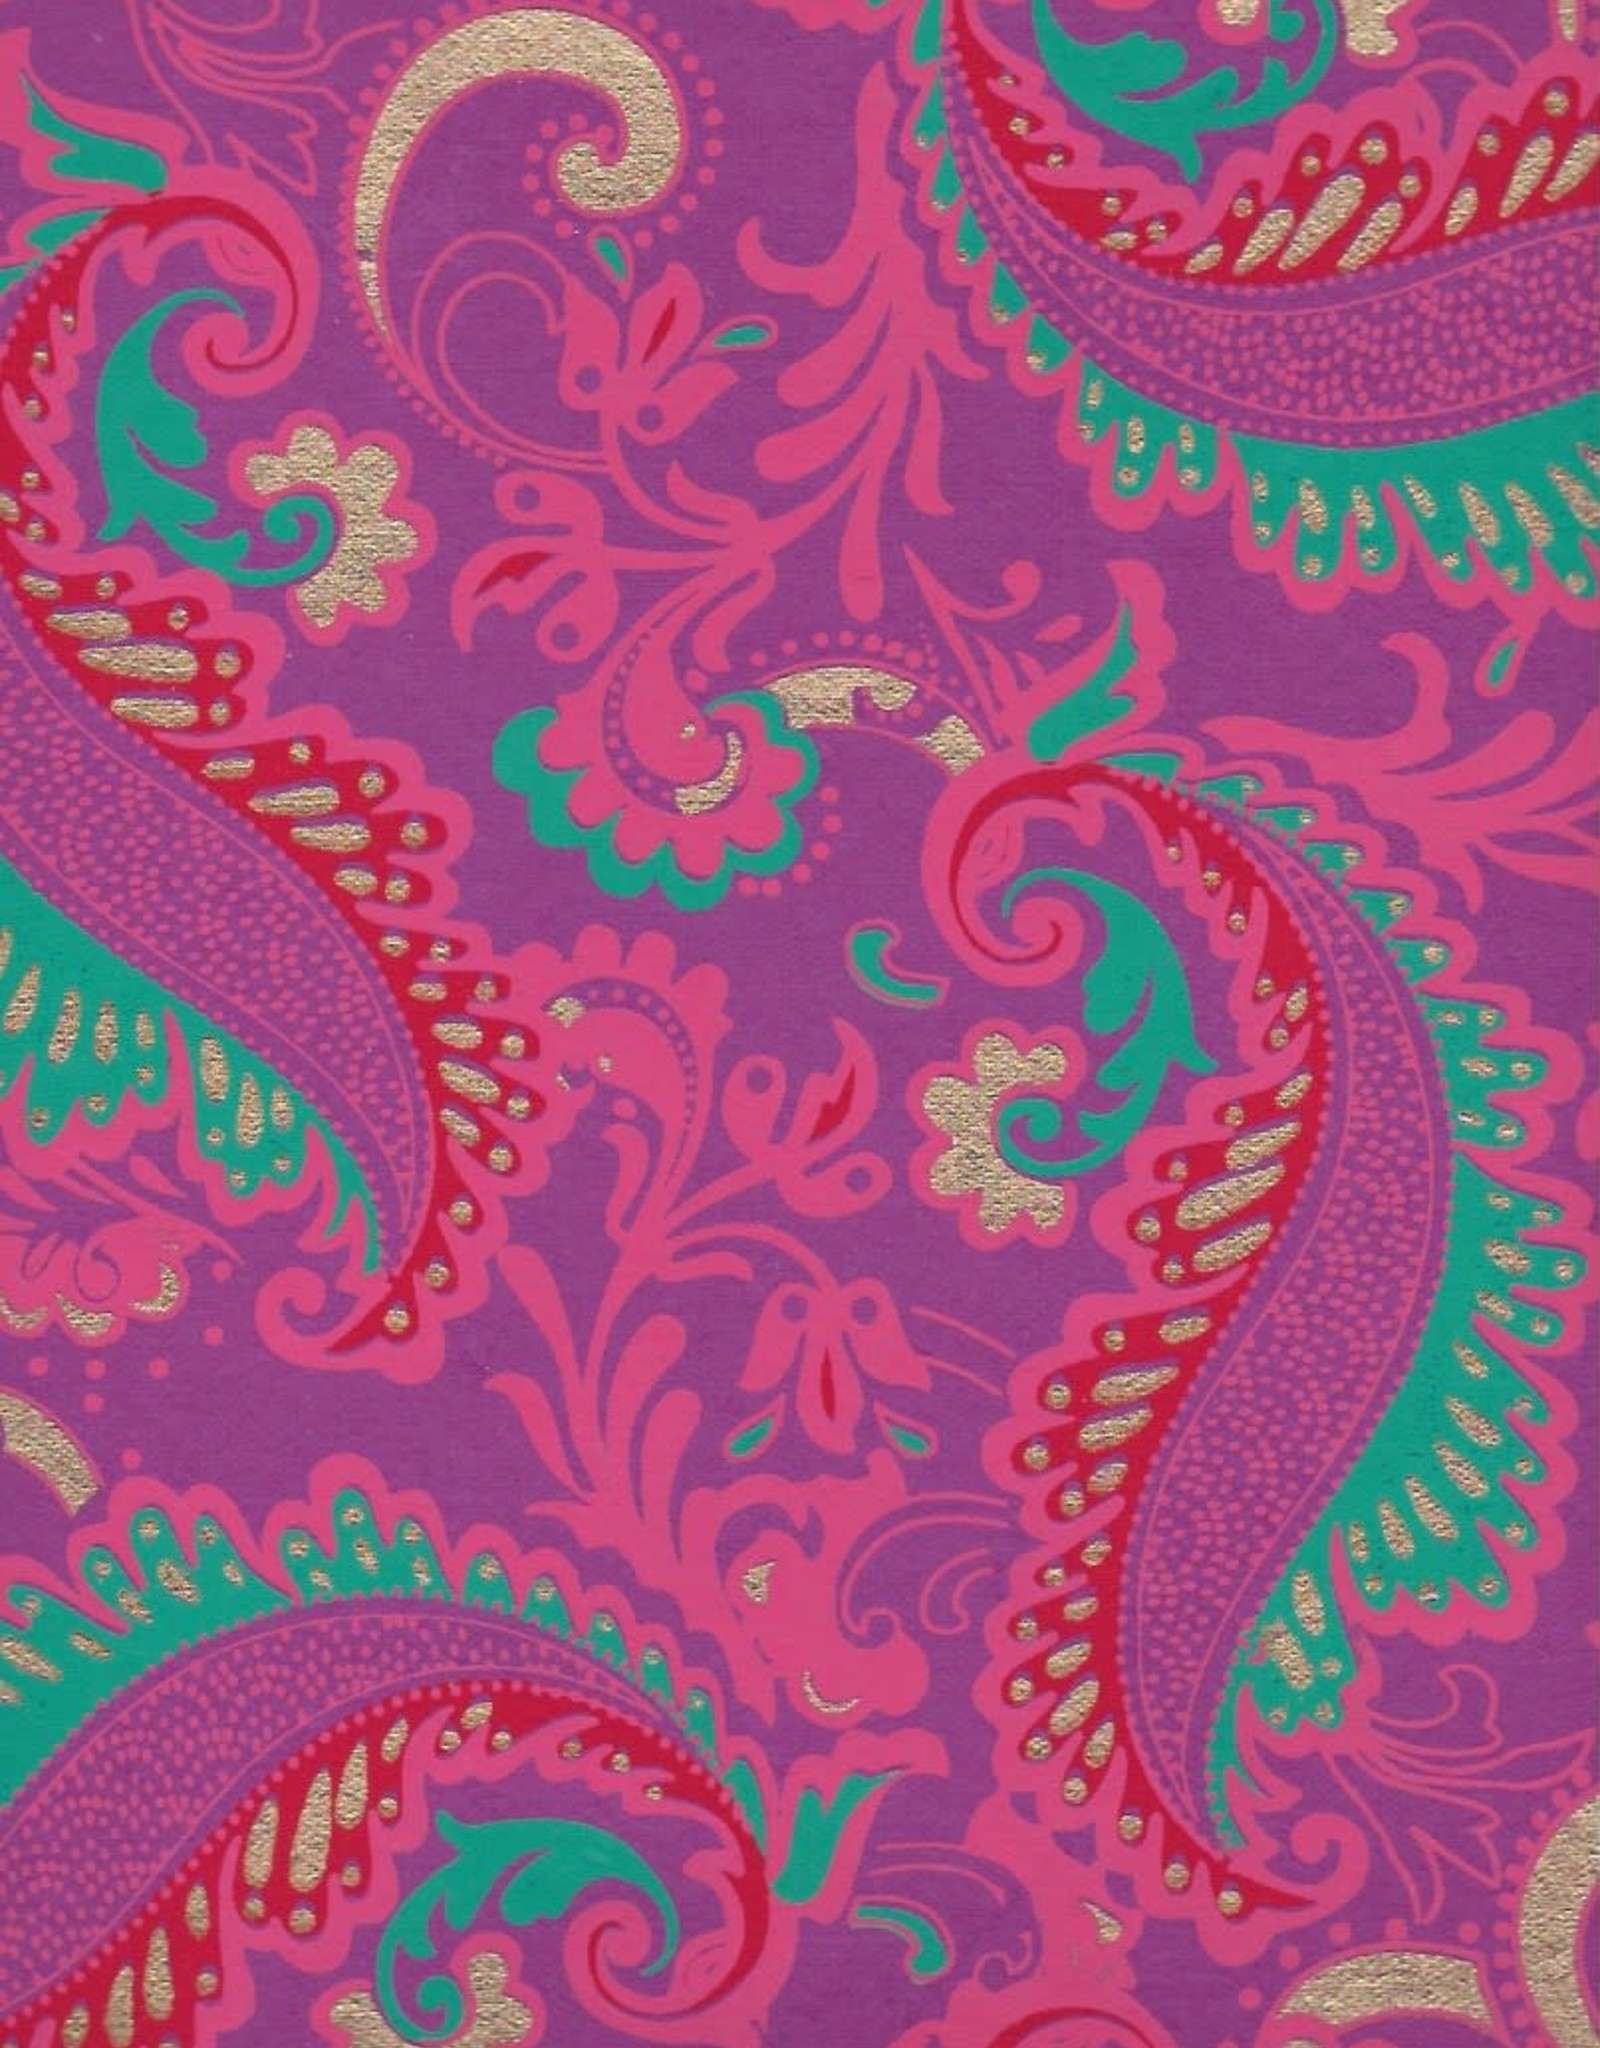 "Sixties Psychedelic Paisley Flower, Turquoise, Pink, Red, Gold on Purple, 22"" x 30"""